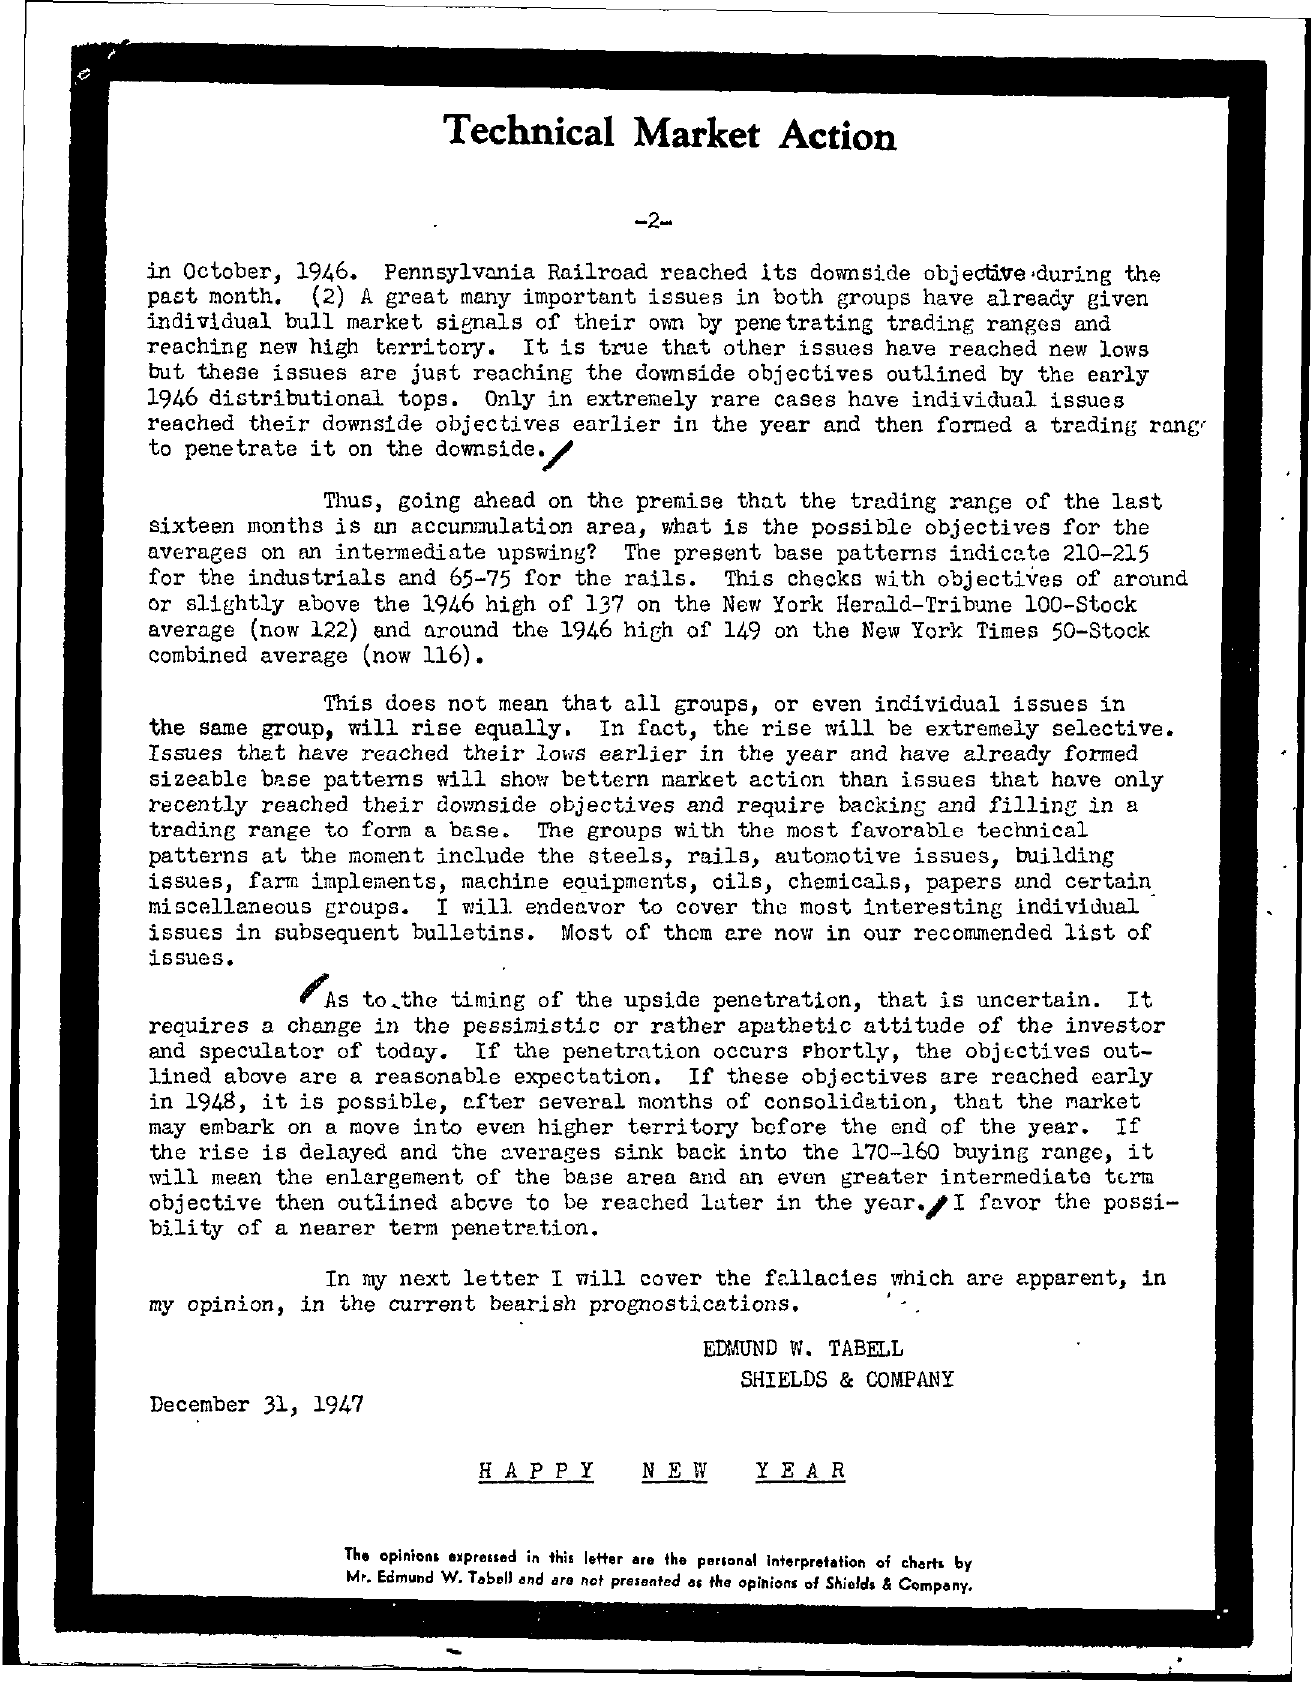 Tabell's Market Letter - December 31, 1947 page 2